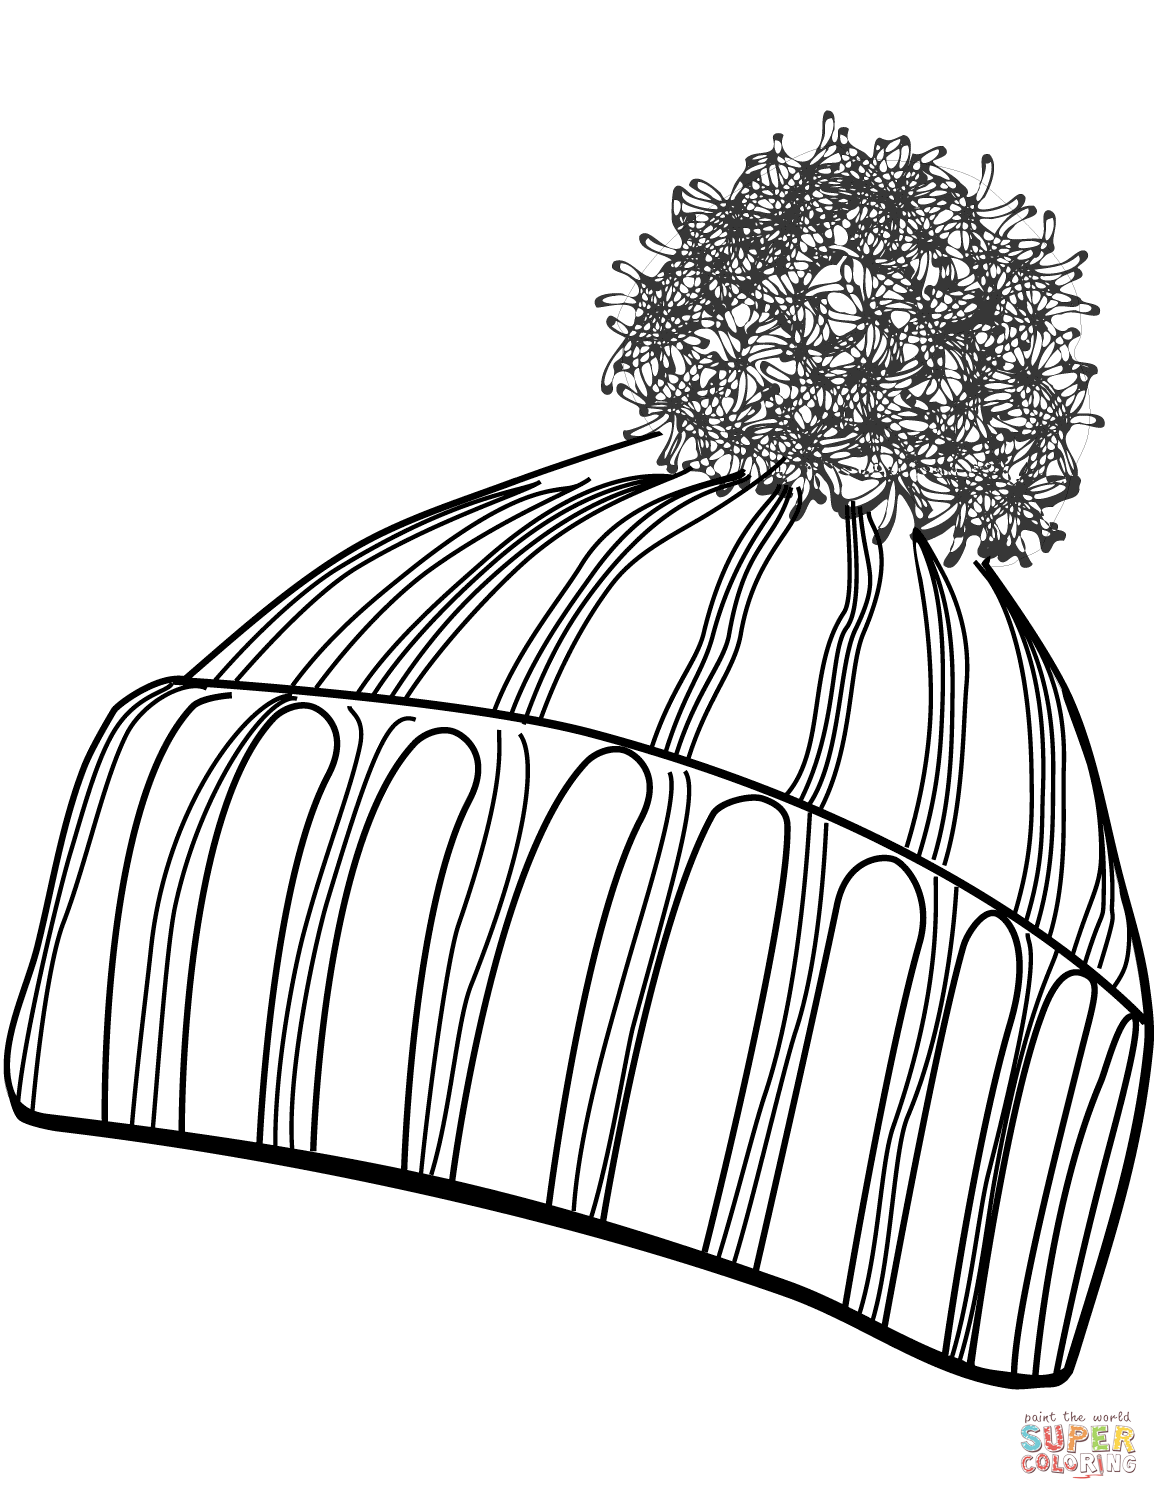 Winter Hat Drawing at GetDrawings.com | Free for personal use Winter ...